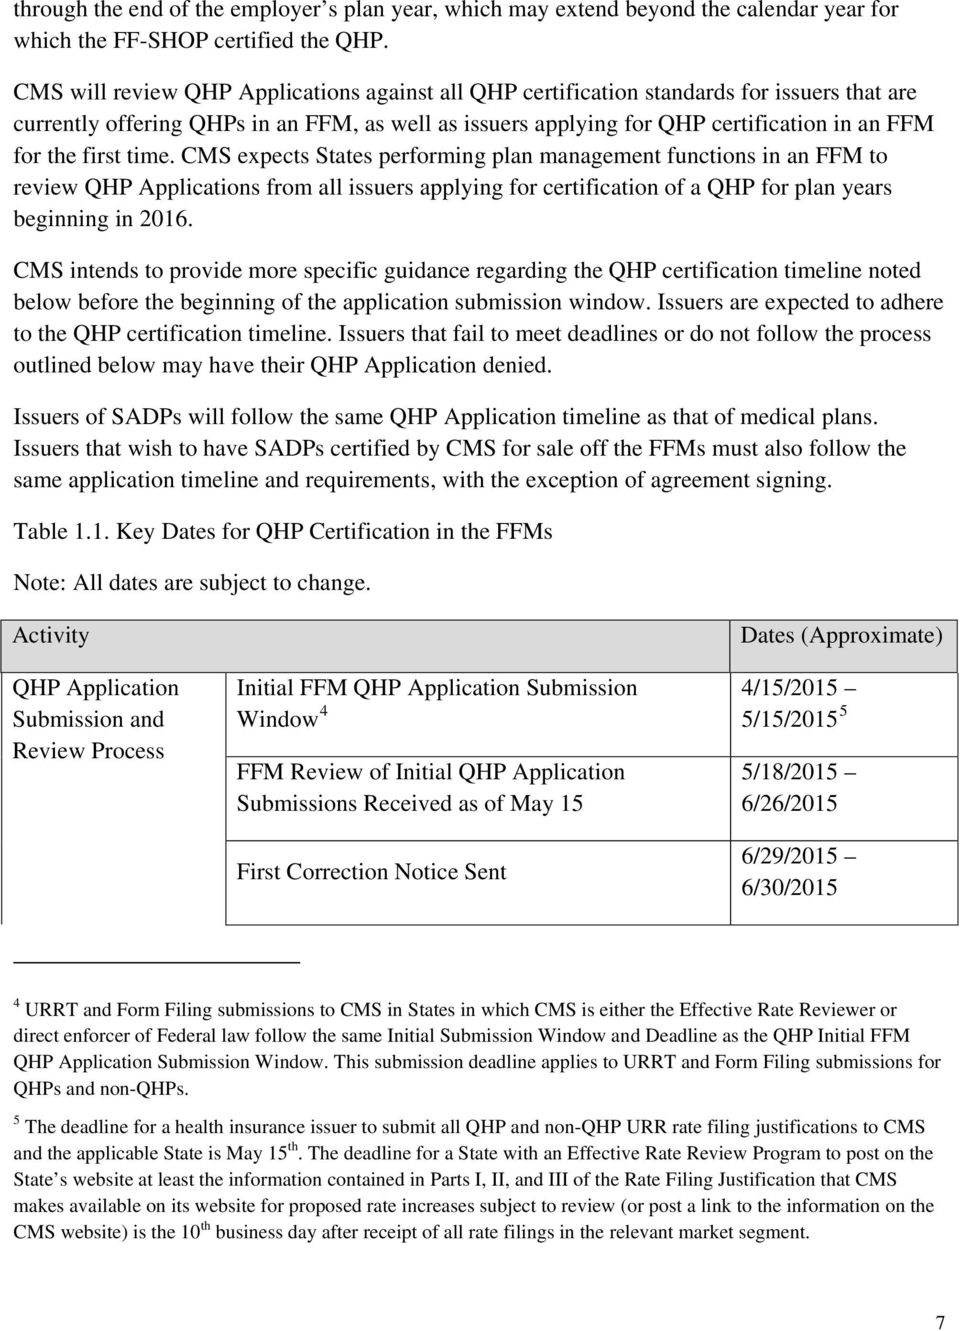 first time. CMS expects States performing plan management functions in an FFM to review QHP Applications from all issuers applying for certification of a QHP for plan years beginning in 2016.